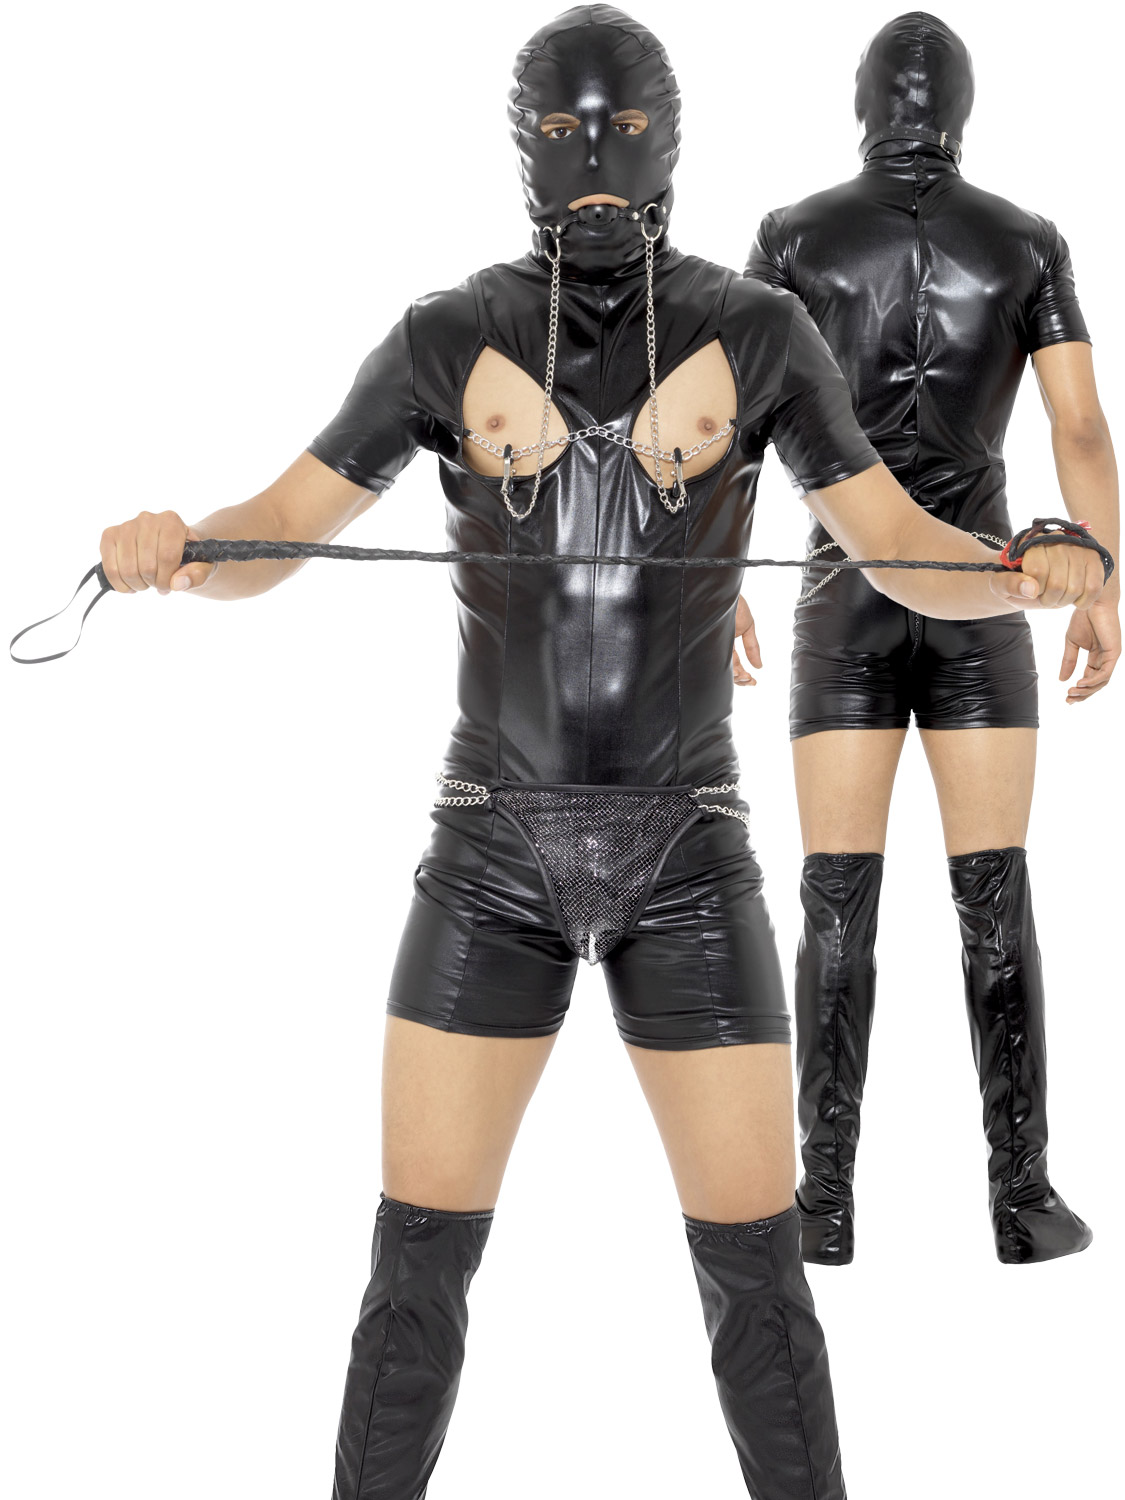 Image result for gimp suit